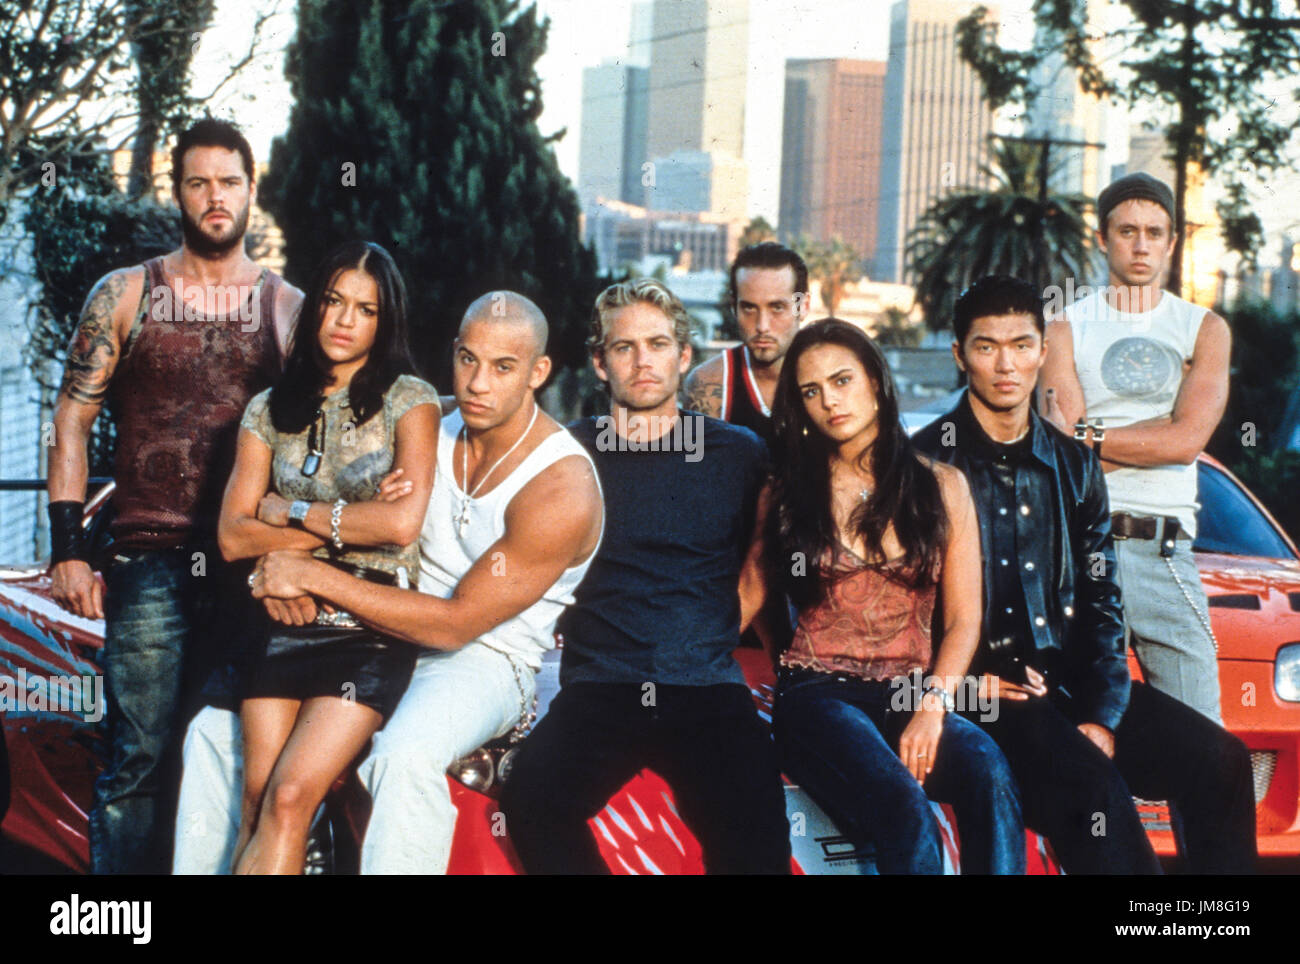 fast and the furious, cast, 2001 - Stock Image